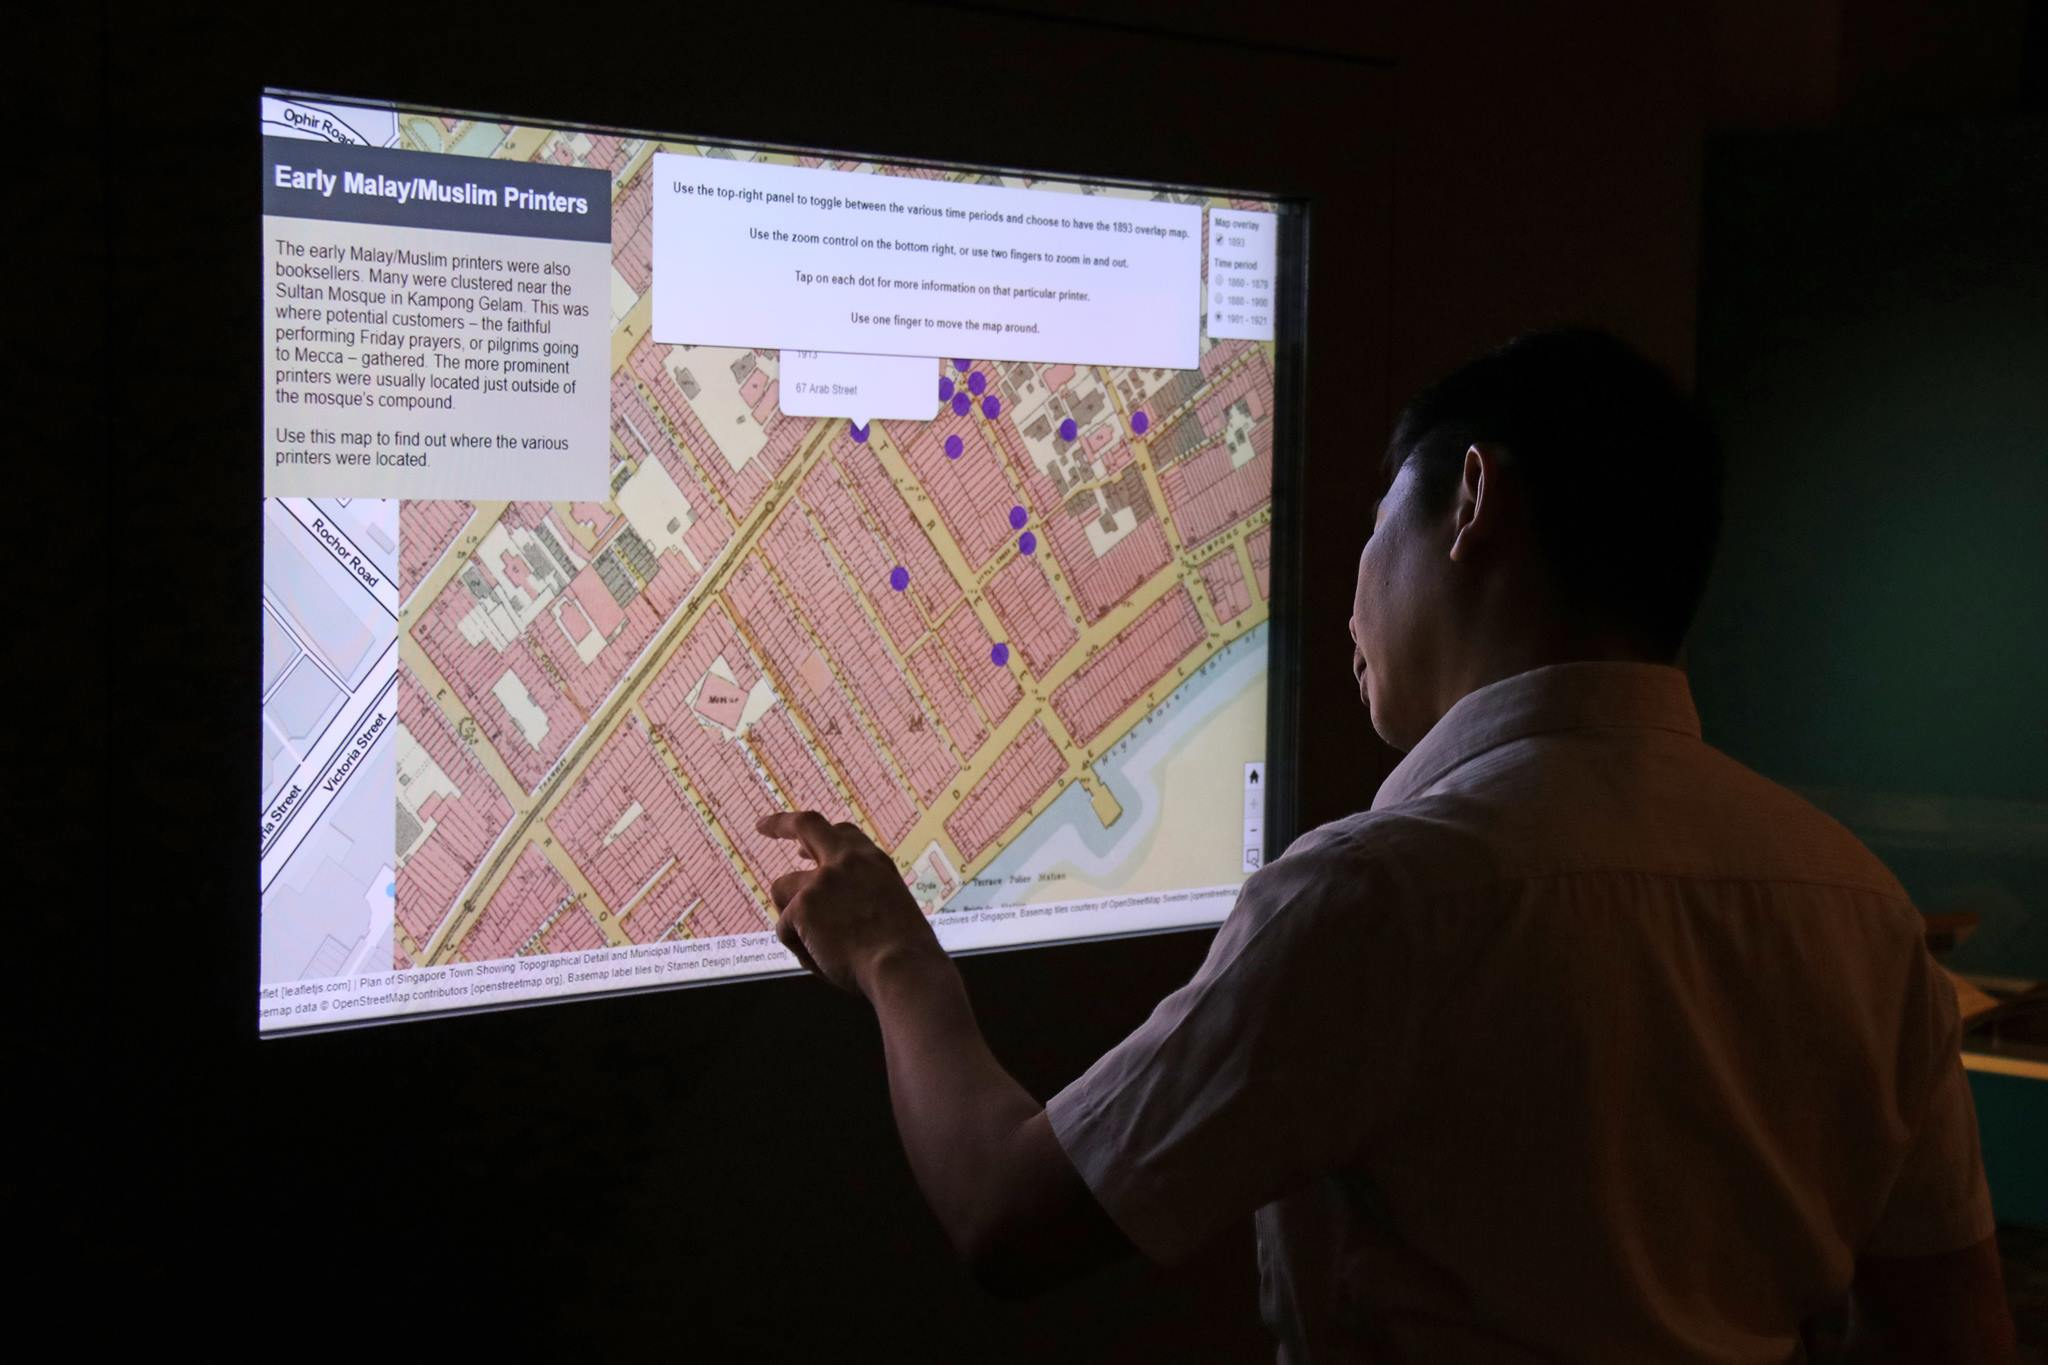 A man touches an interactive screen on the wall. The screen displays a city map with several map markers, along with the information box titled Early Malay Muslim Printers.